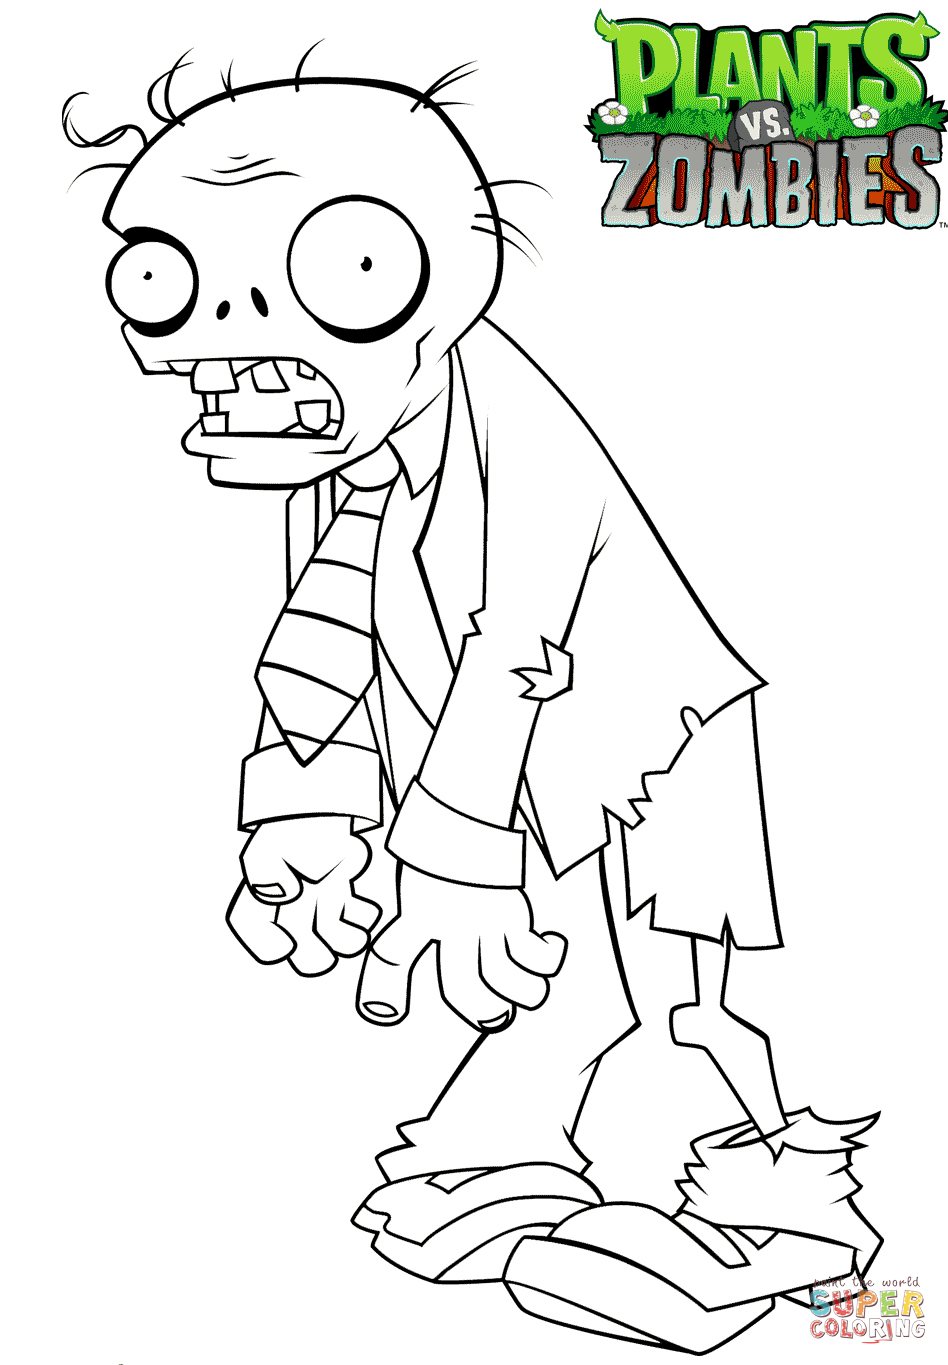 Zombie Santa Coloring Page With Plants Vs Zombies Free Printable Pages